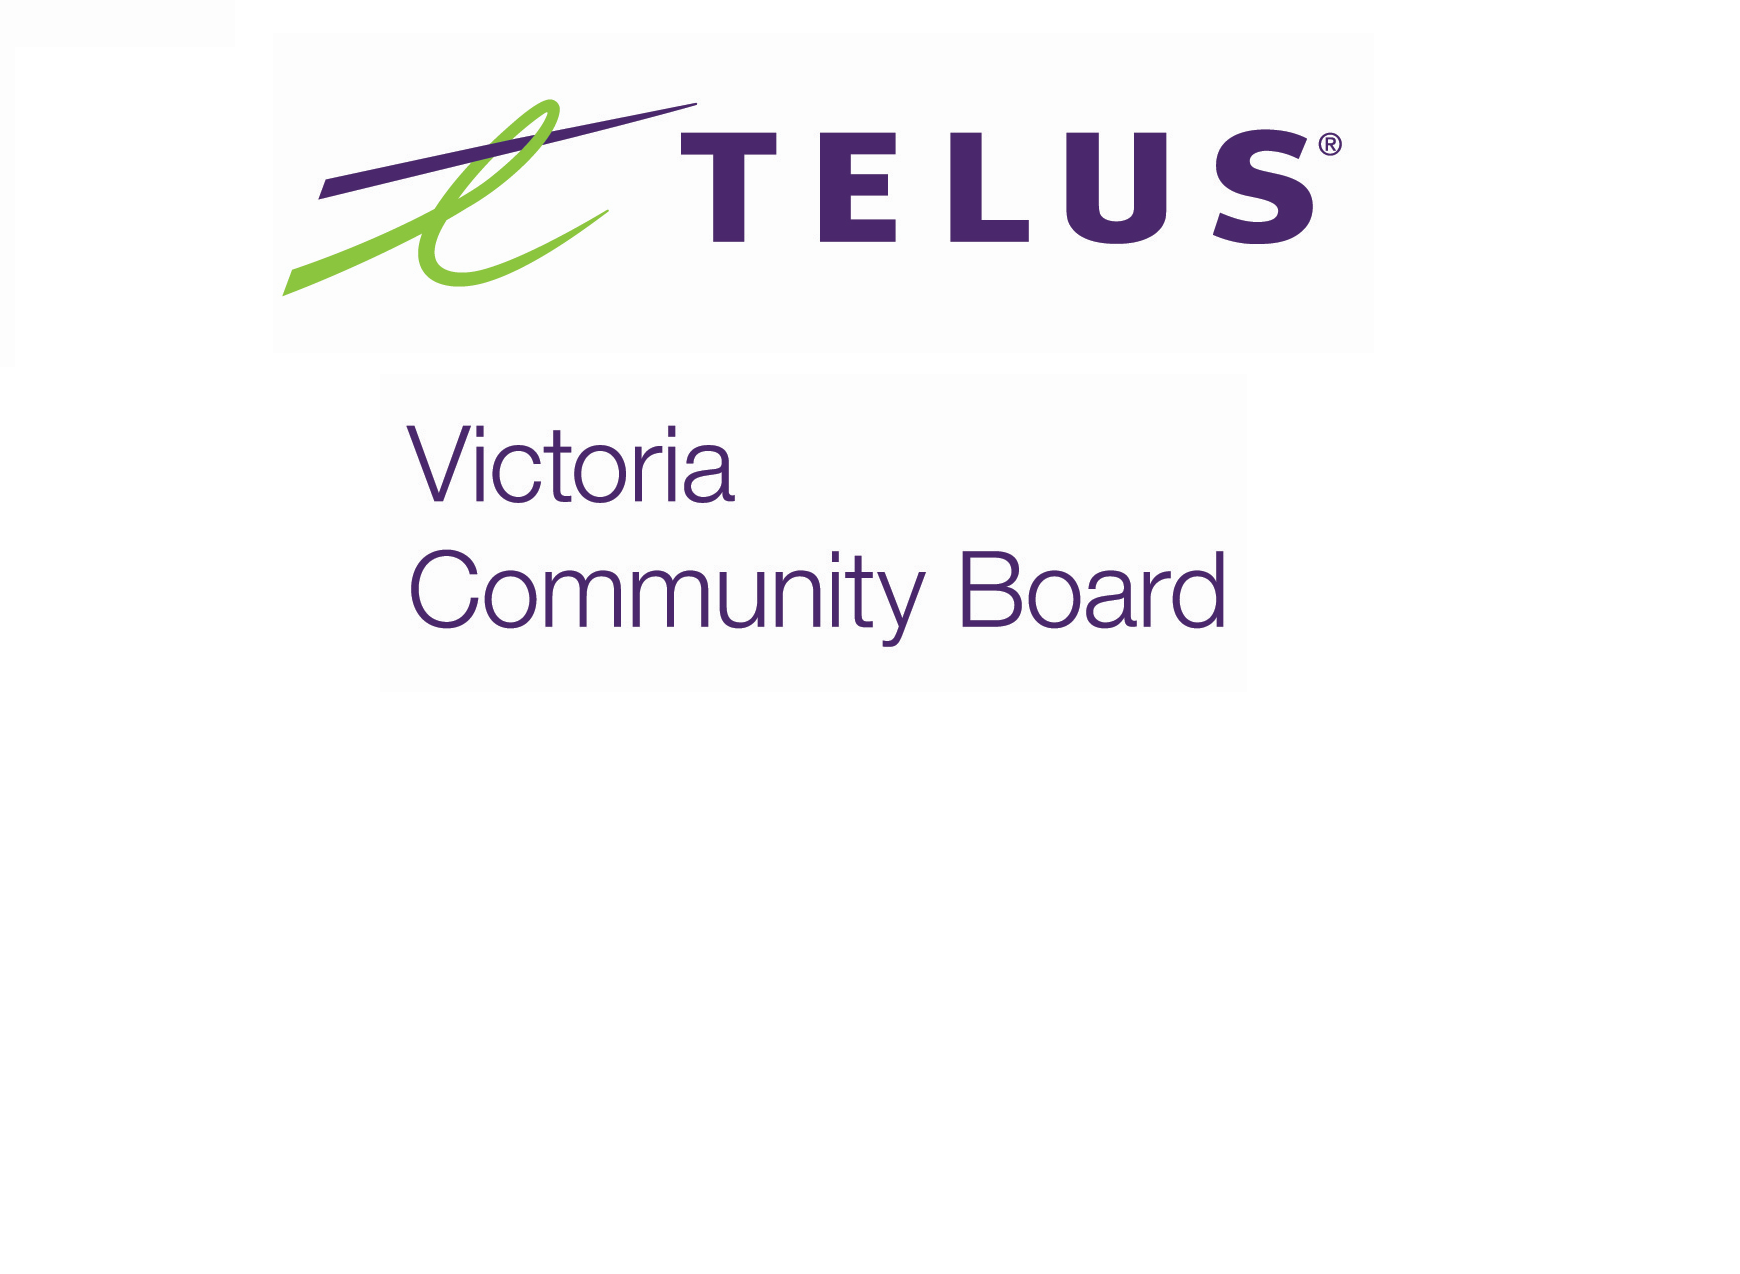 TELUS Vancouver Island Community Board donates $20,000 to More than Meals program for isolated seniors